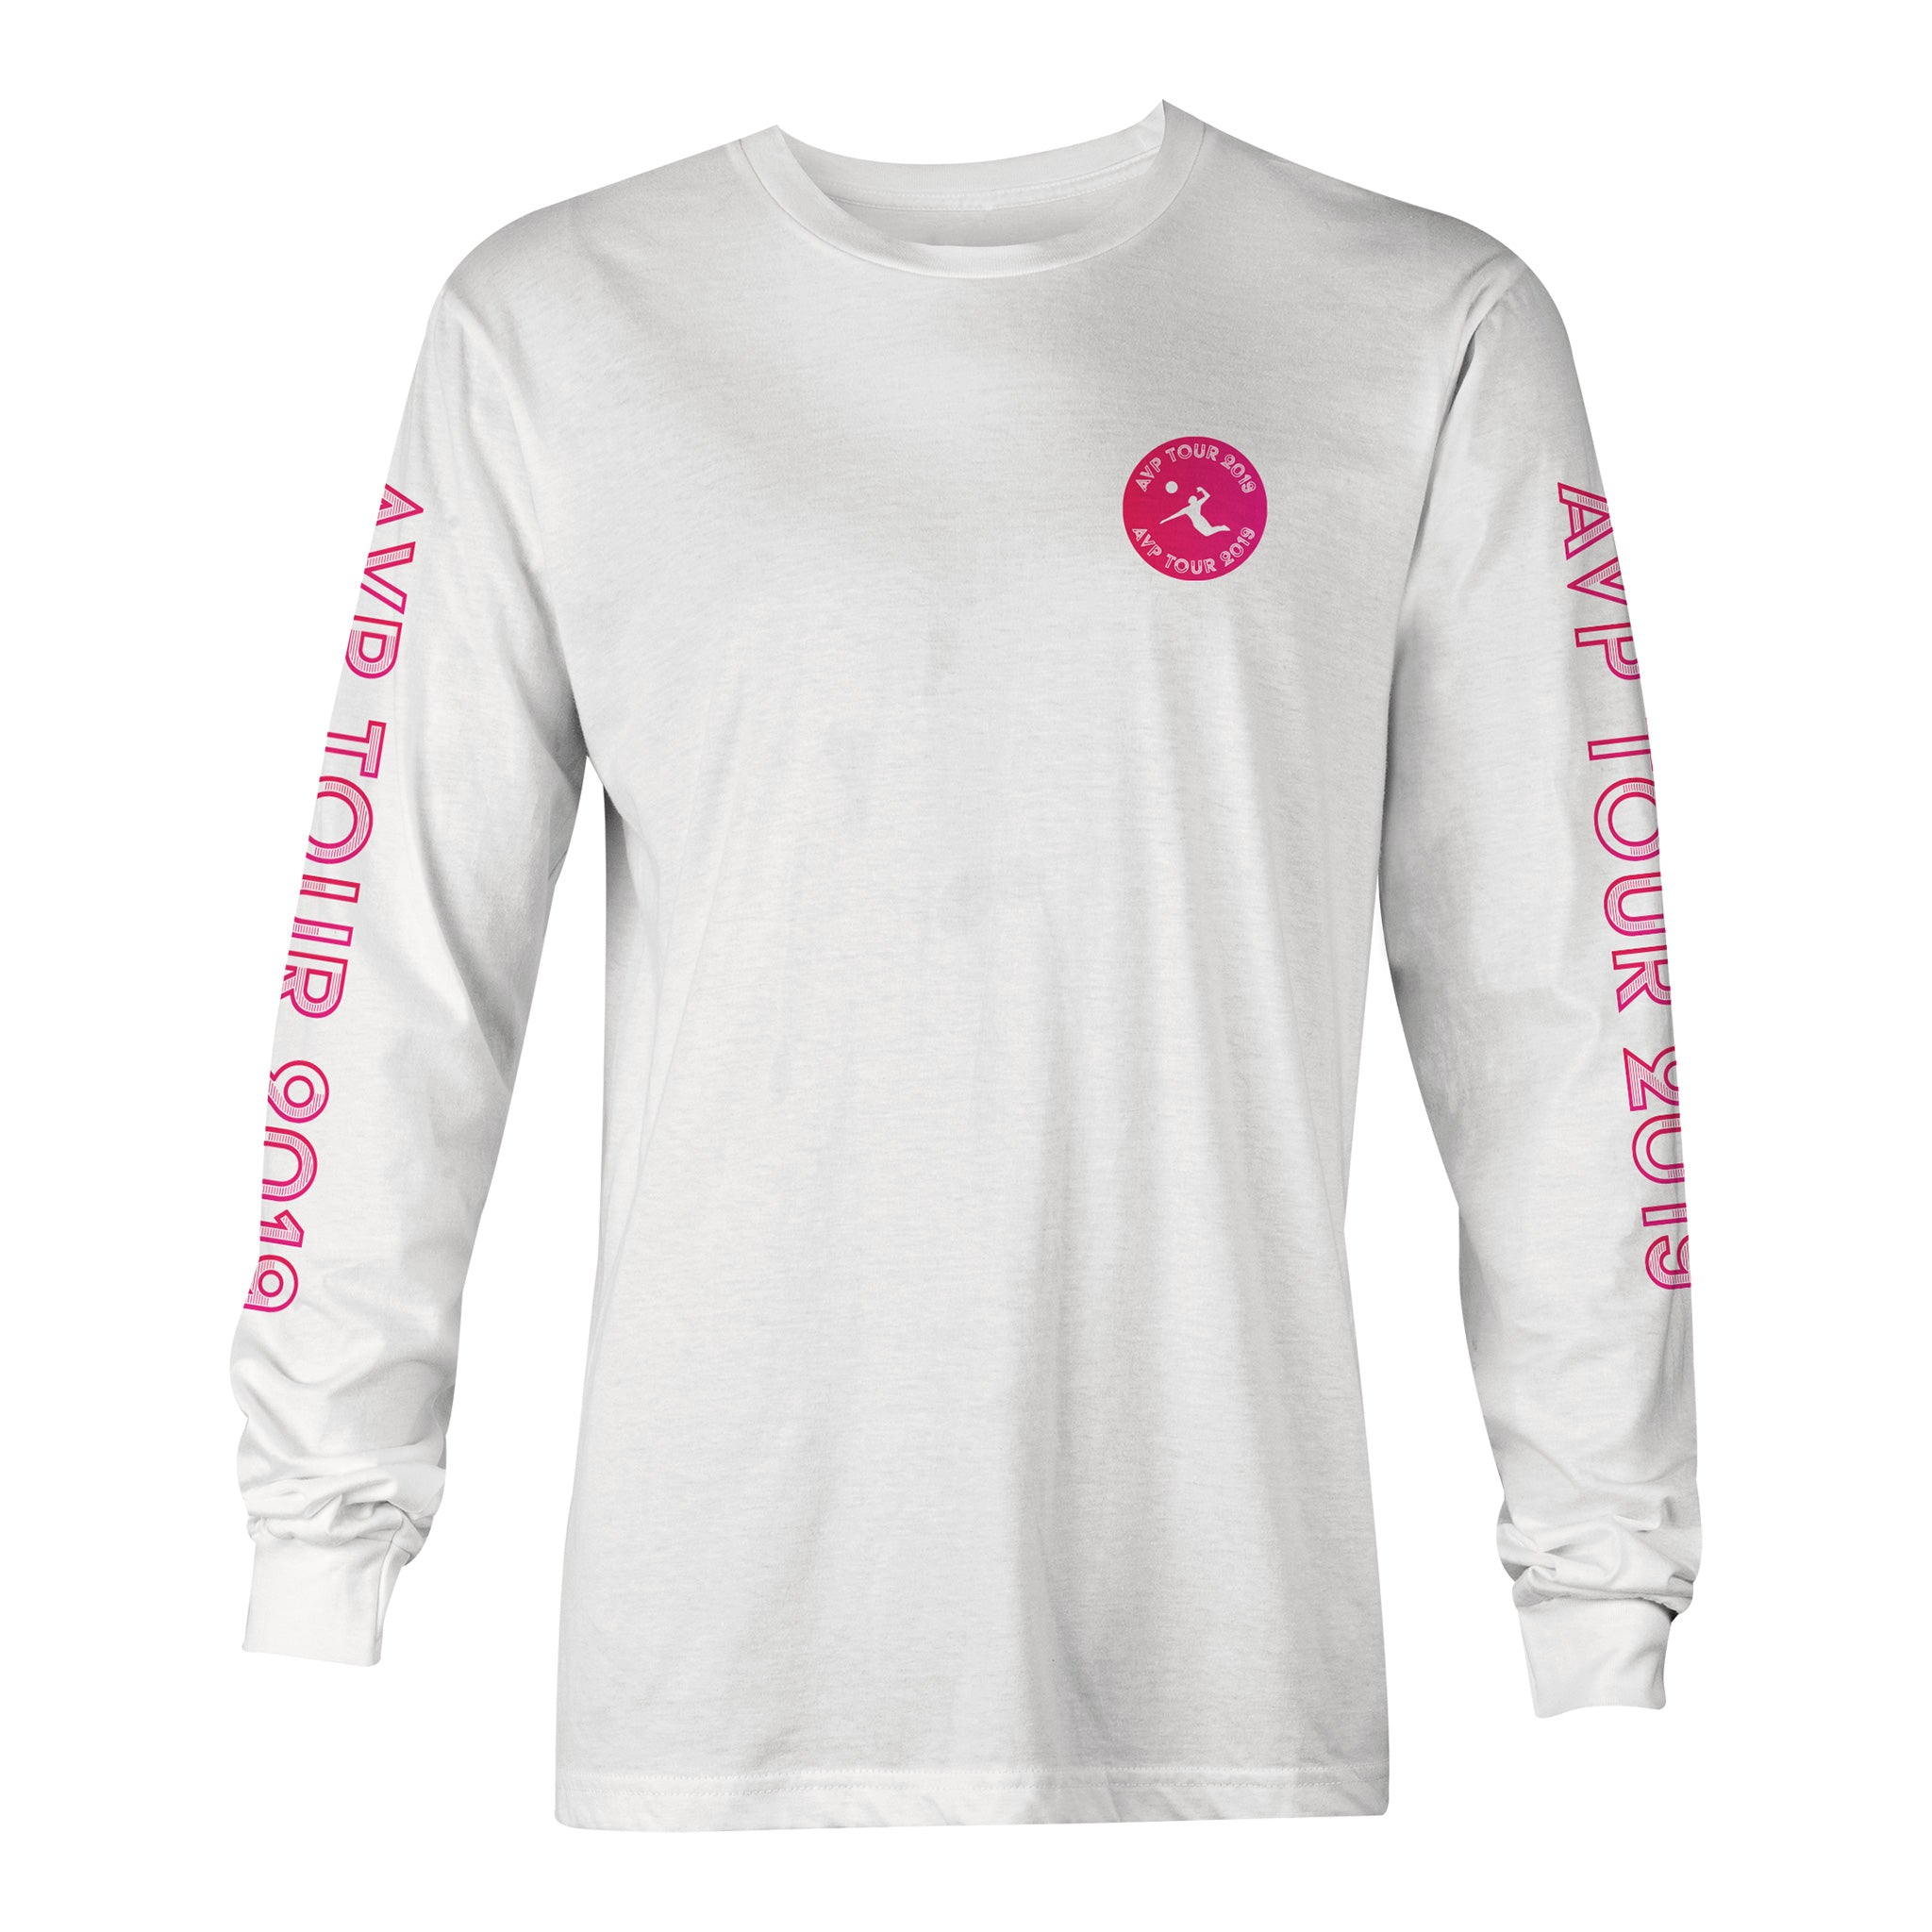 Classic Retro Tour Long Sleeve